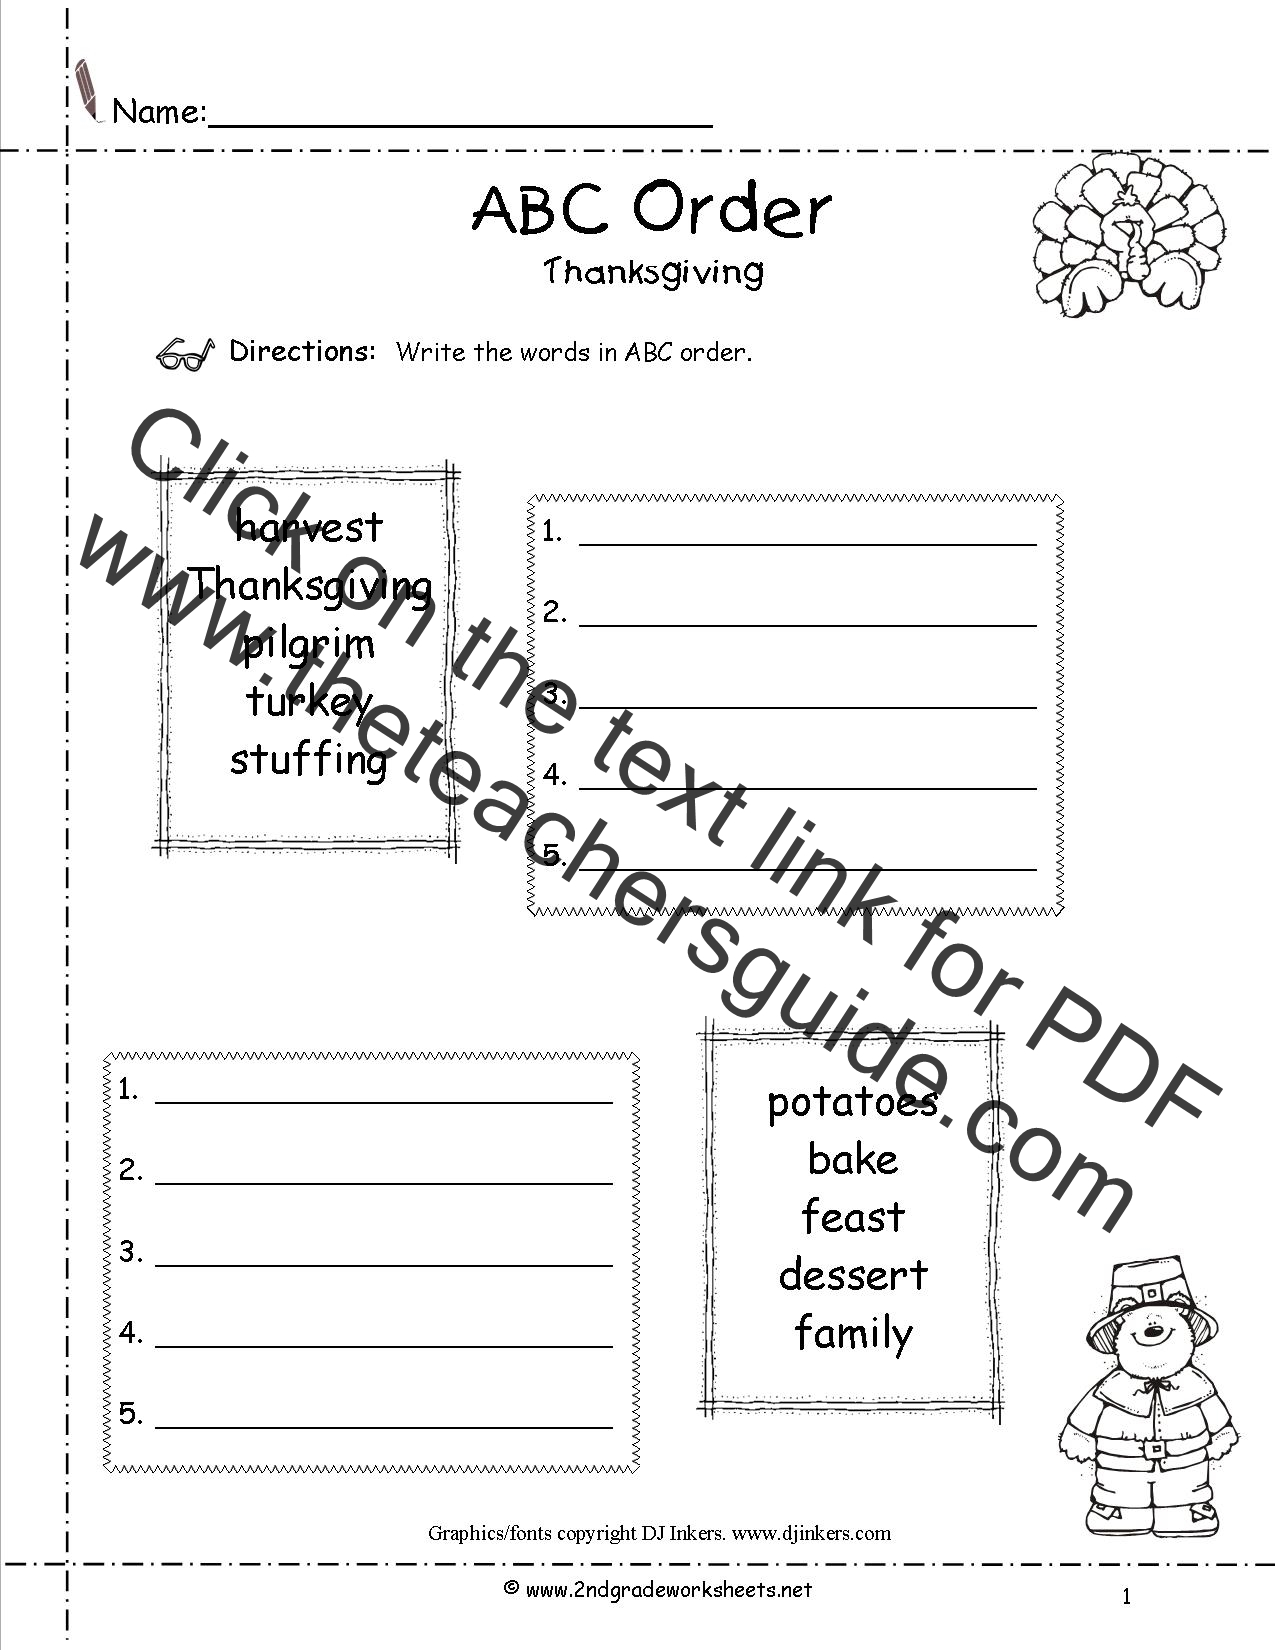 Worksheets Abc Order Worksheets 2nd Grade thanksgiving printouts and worksheets abc order worksheet